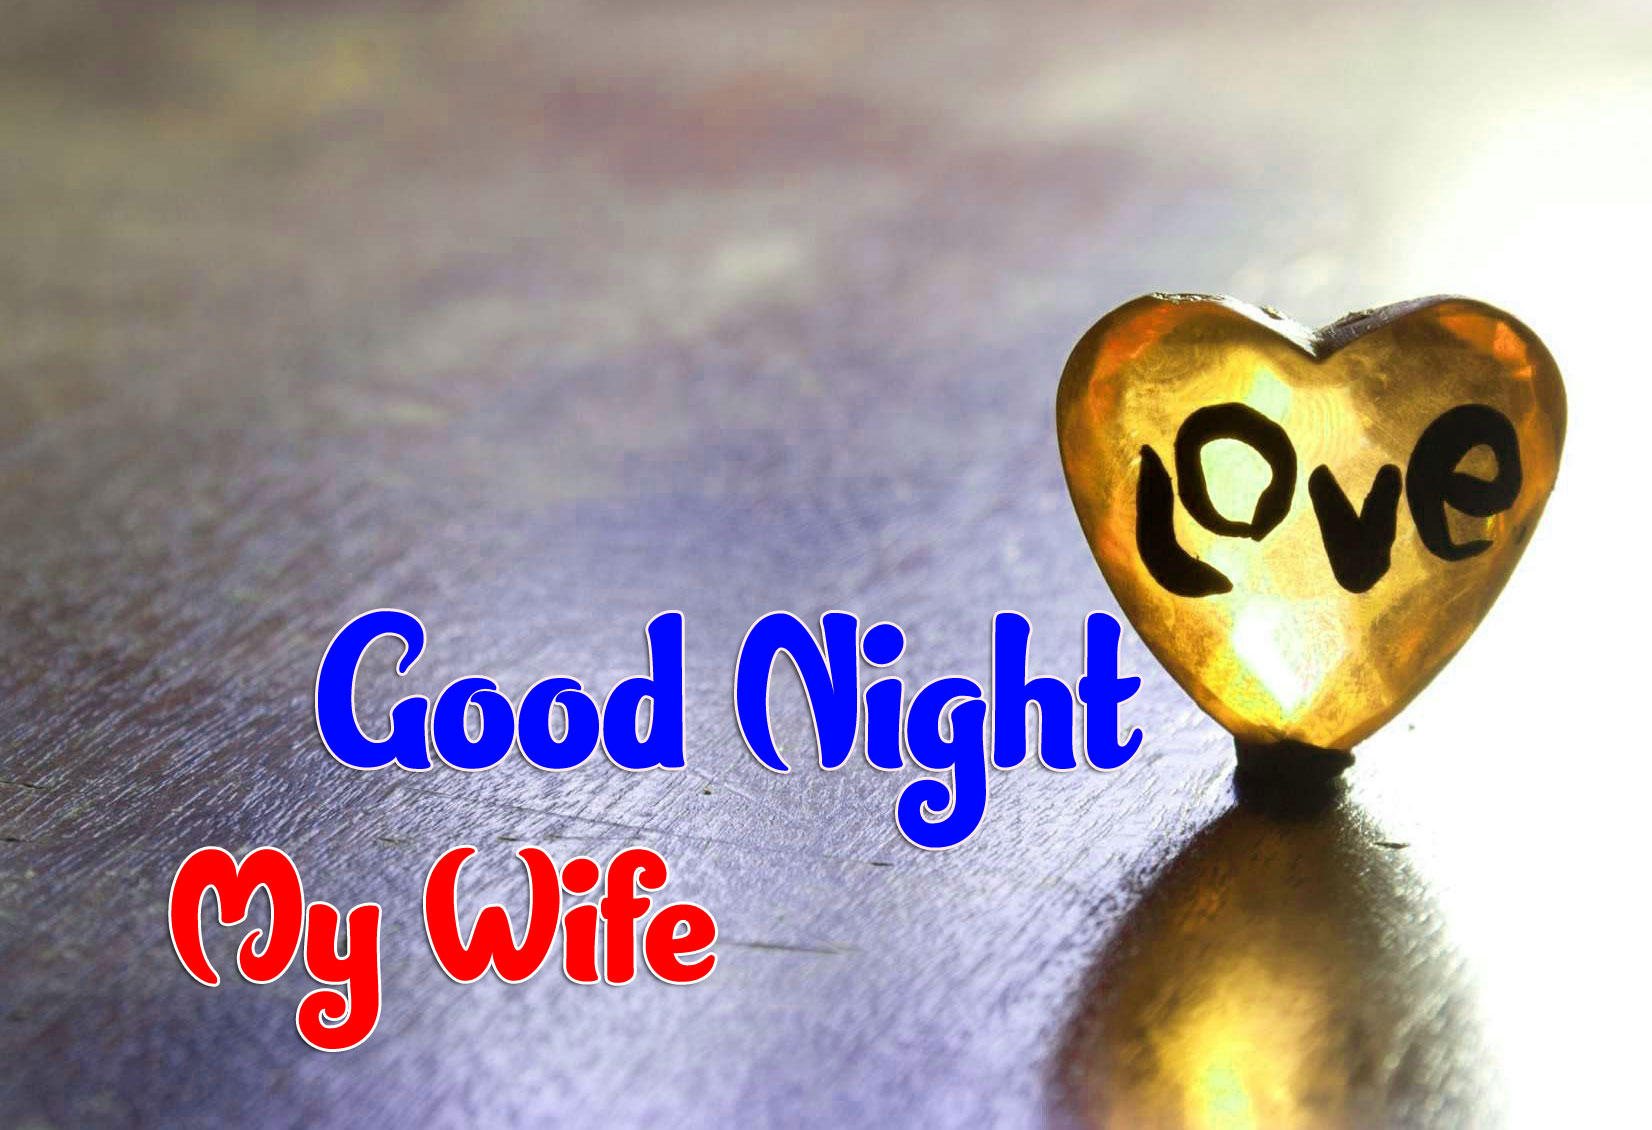 Heart Girlfriend Good Night Wishes Images